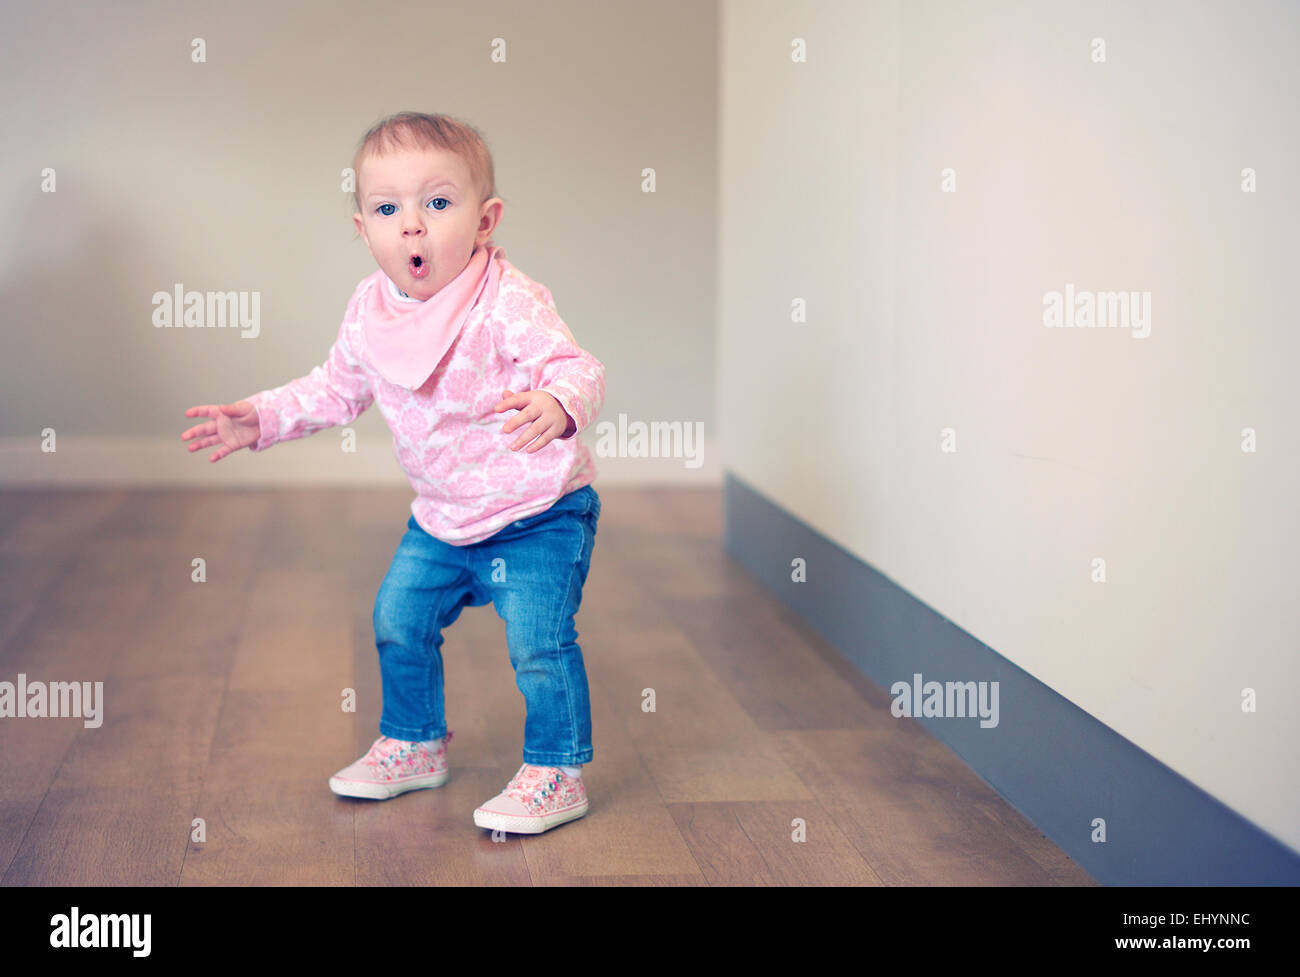 Baby girl learning to balance - Stock Image